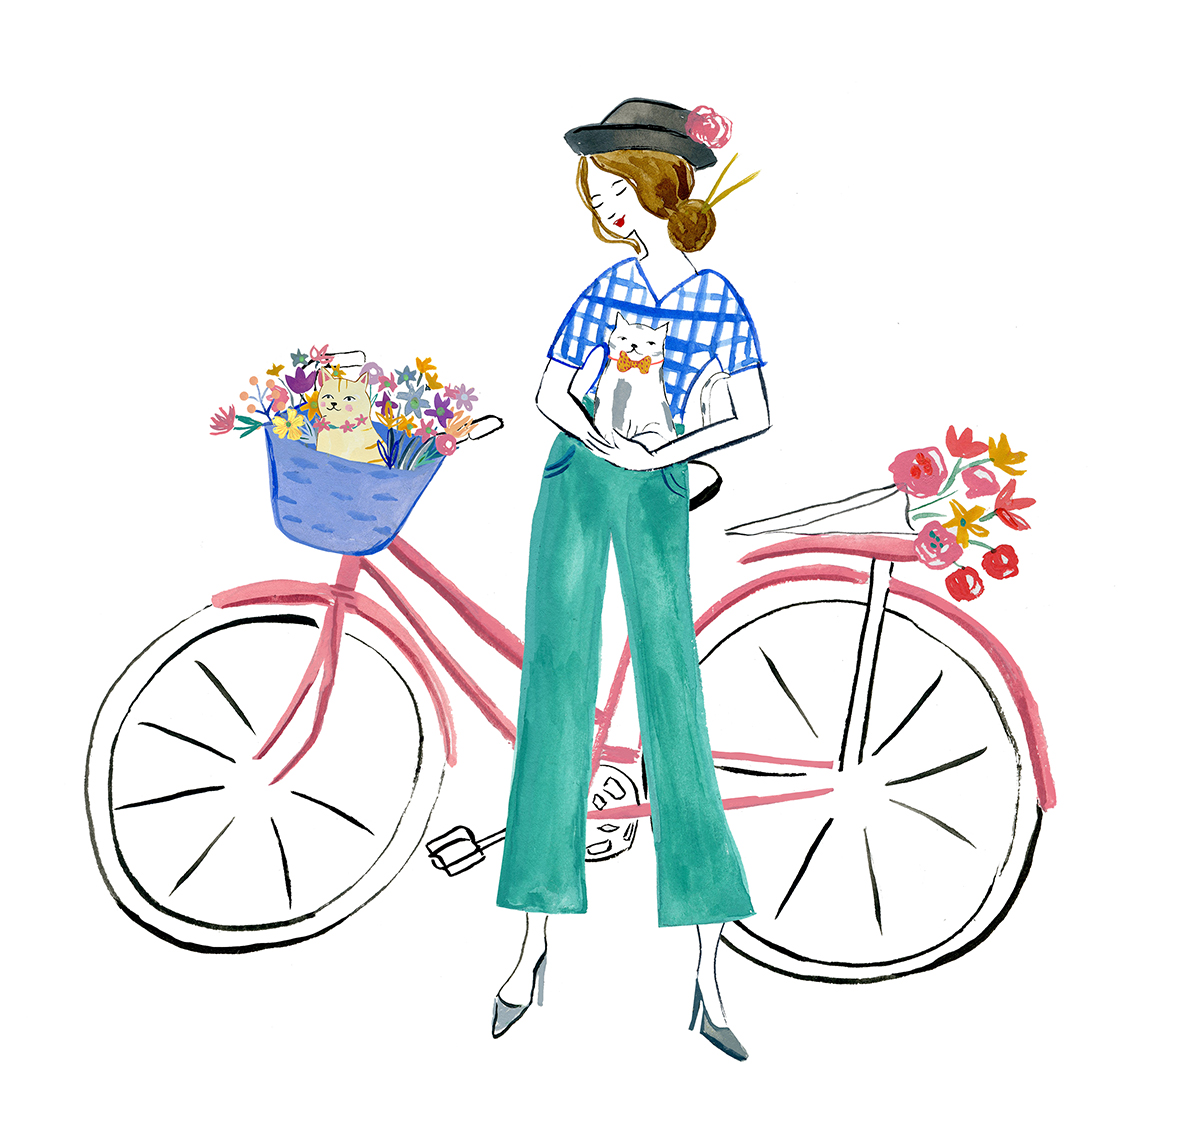 Girl_with_bike_flowers_and_cats.jpg